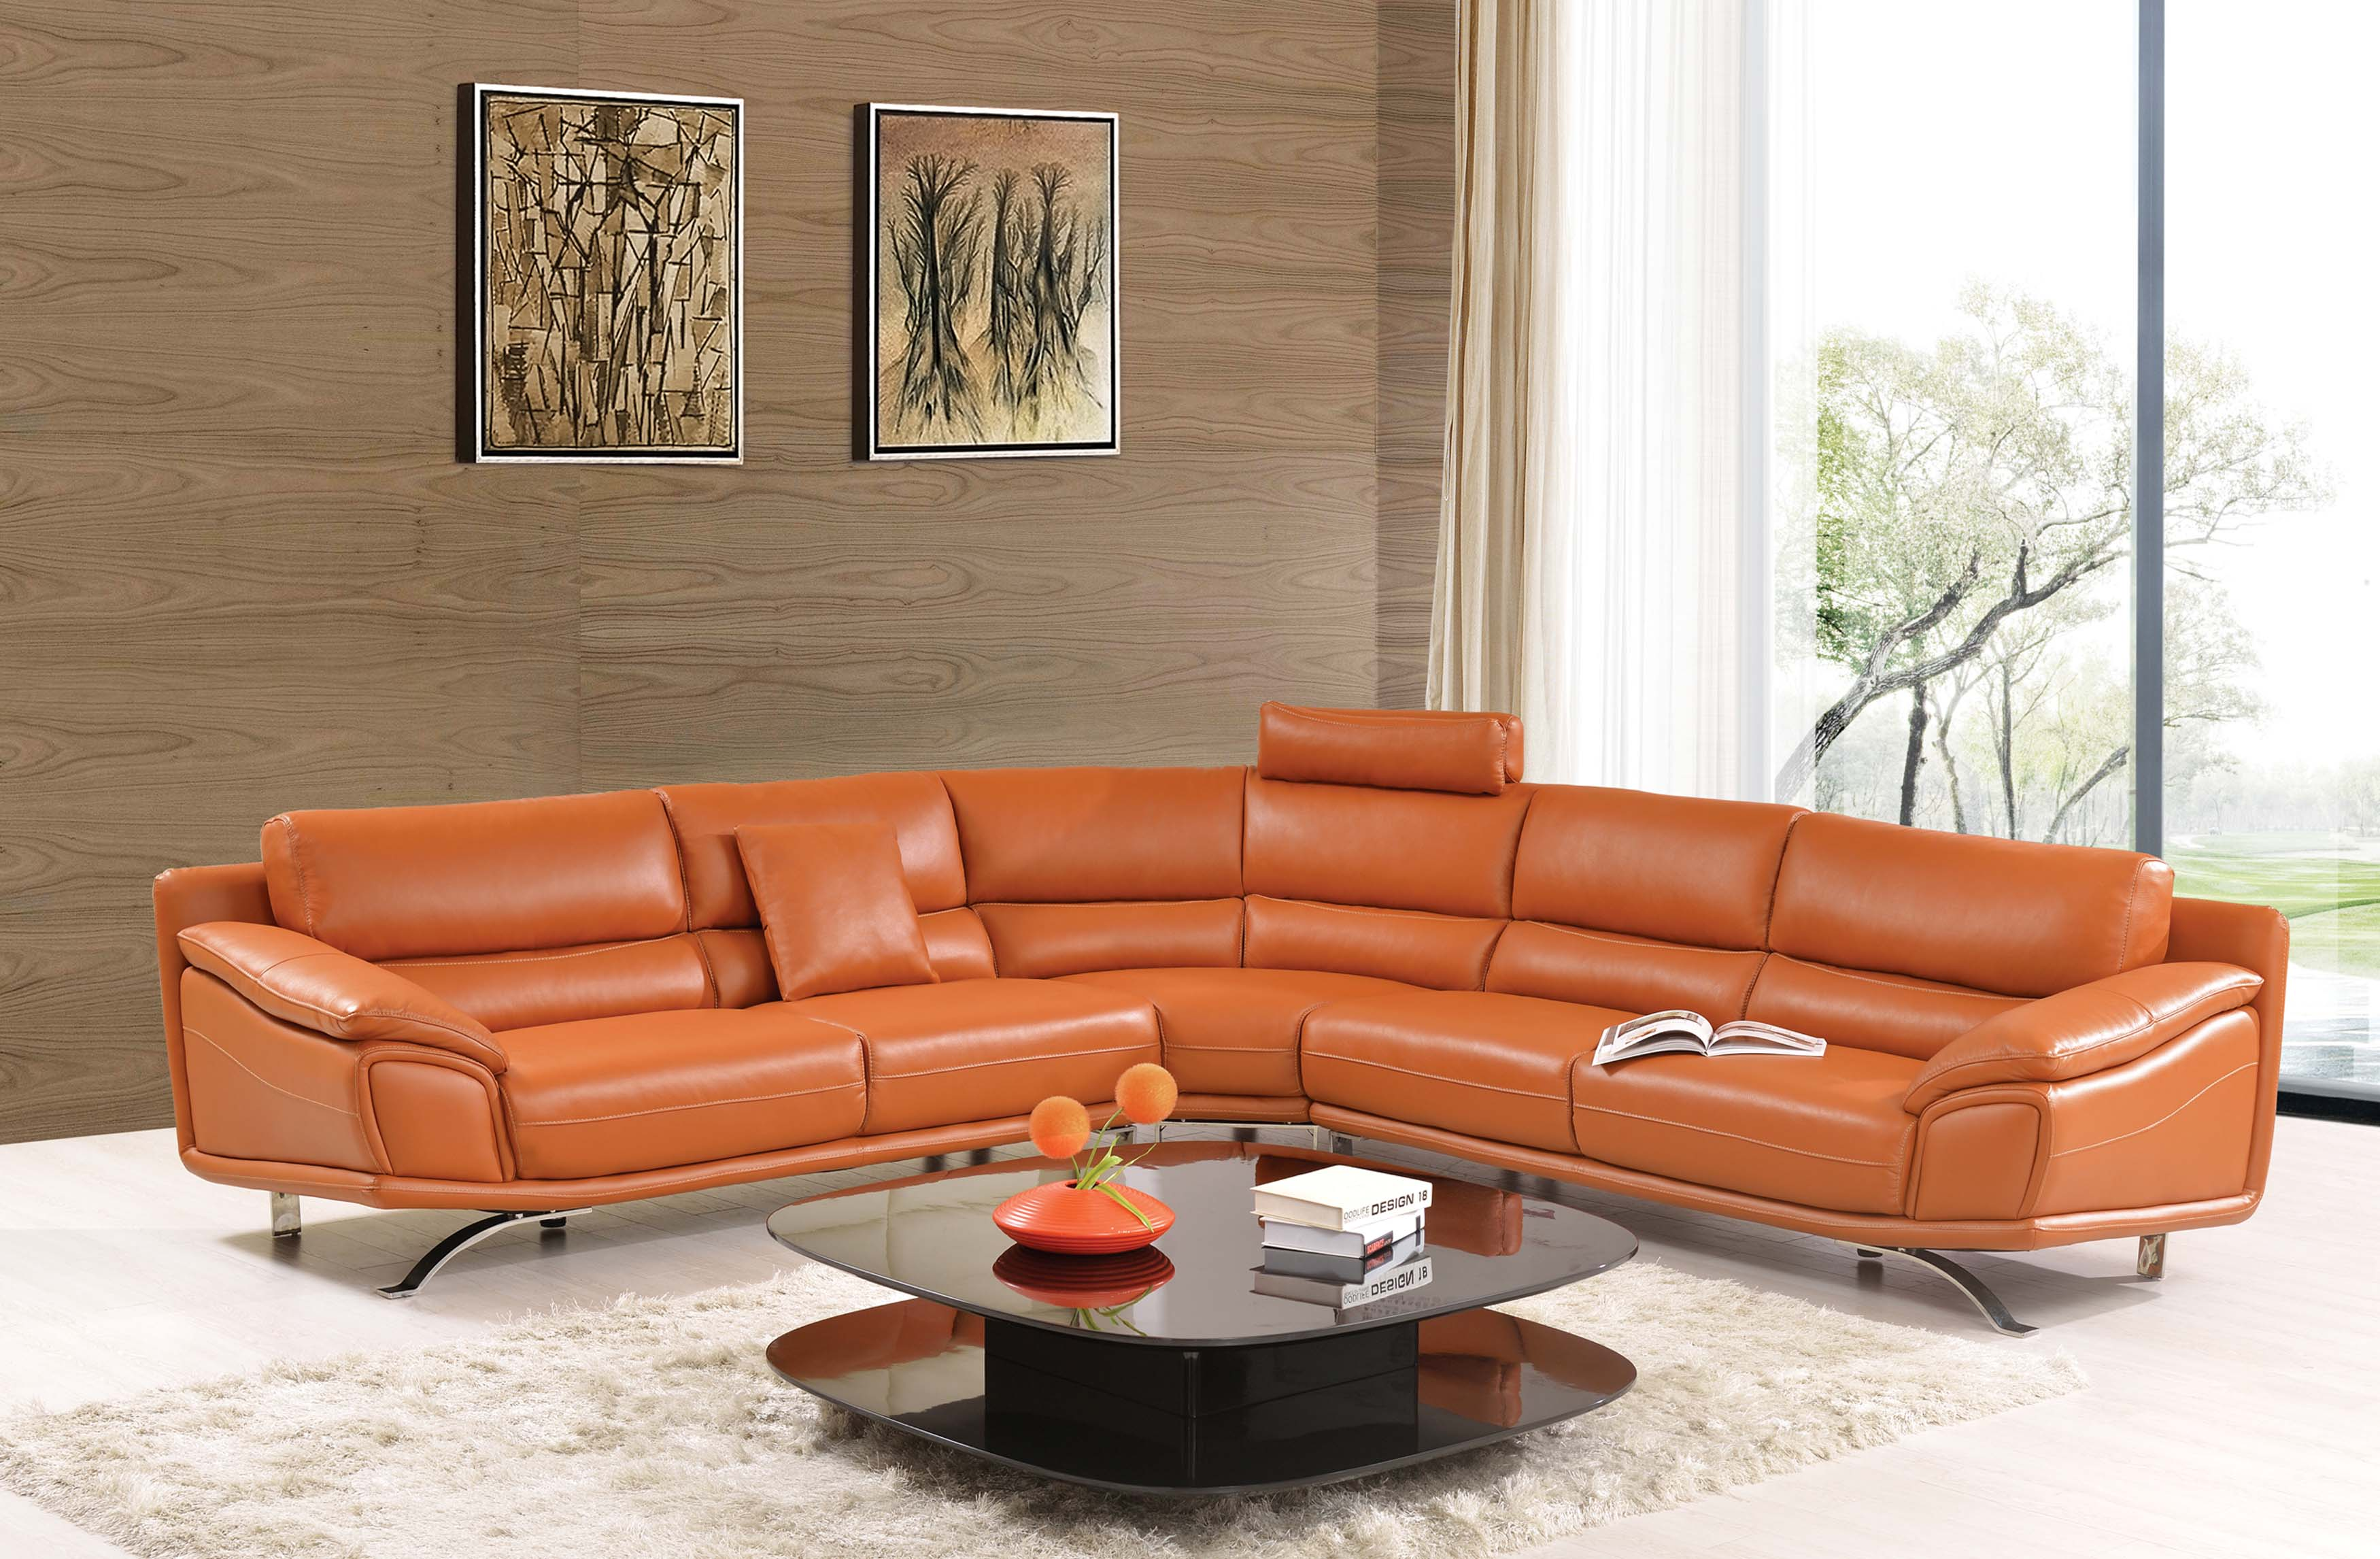 soft right beige sectional side comfy offered pin the seated short natuzzi swings butter very a and l sofa curved shape to is s colored in when it leather